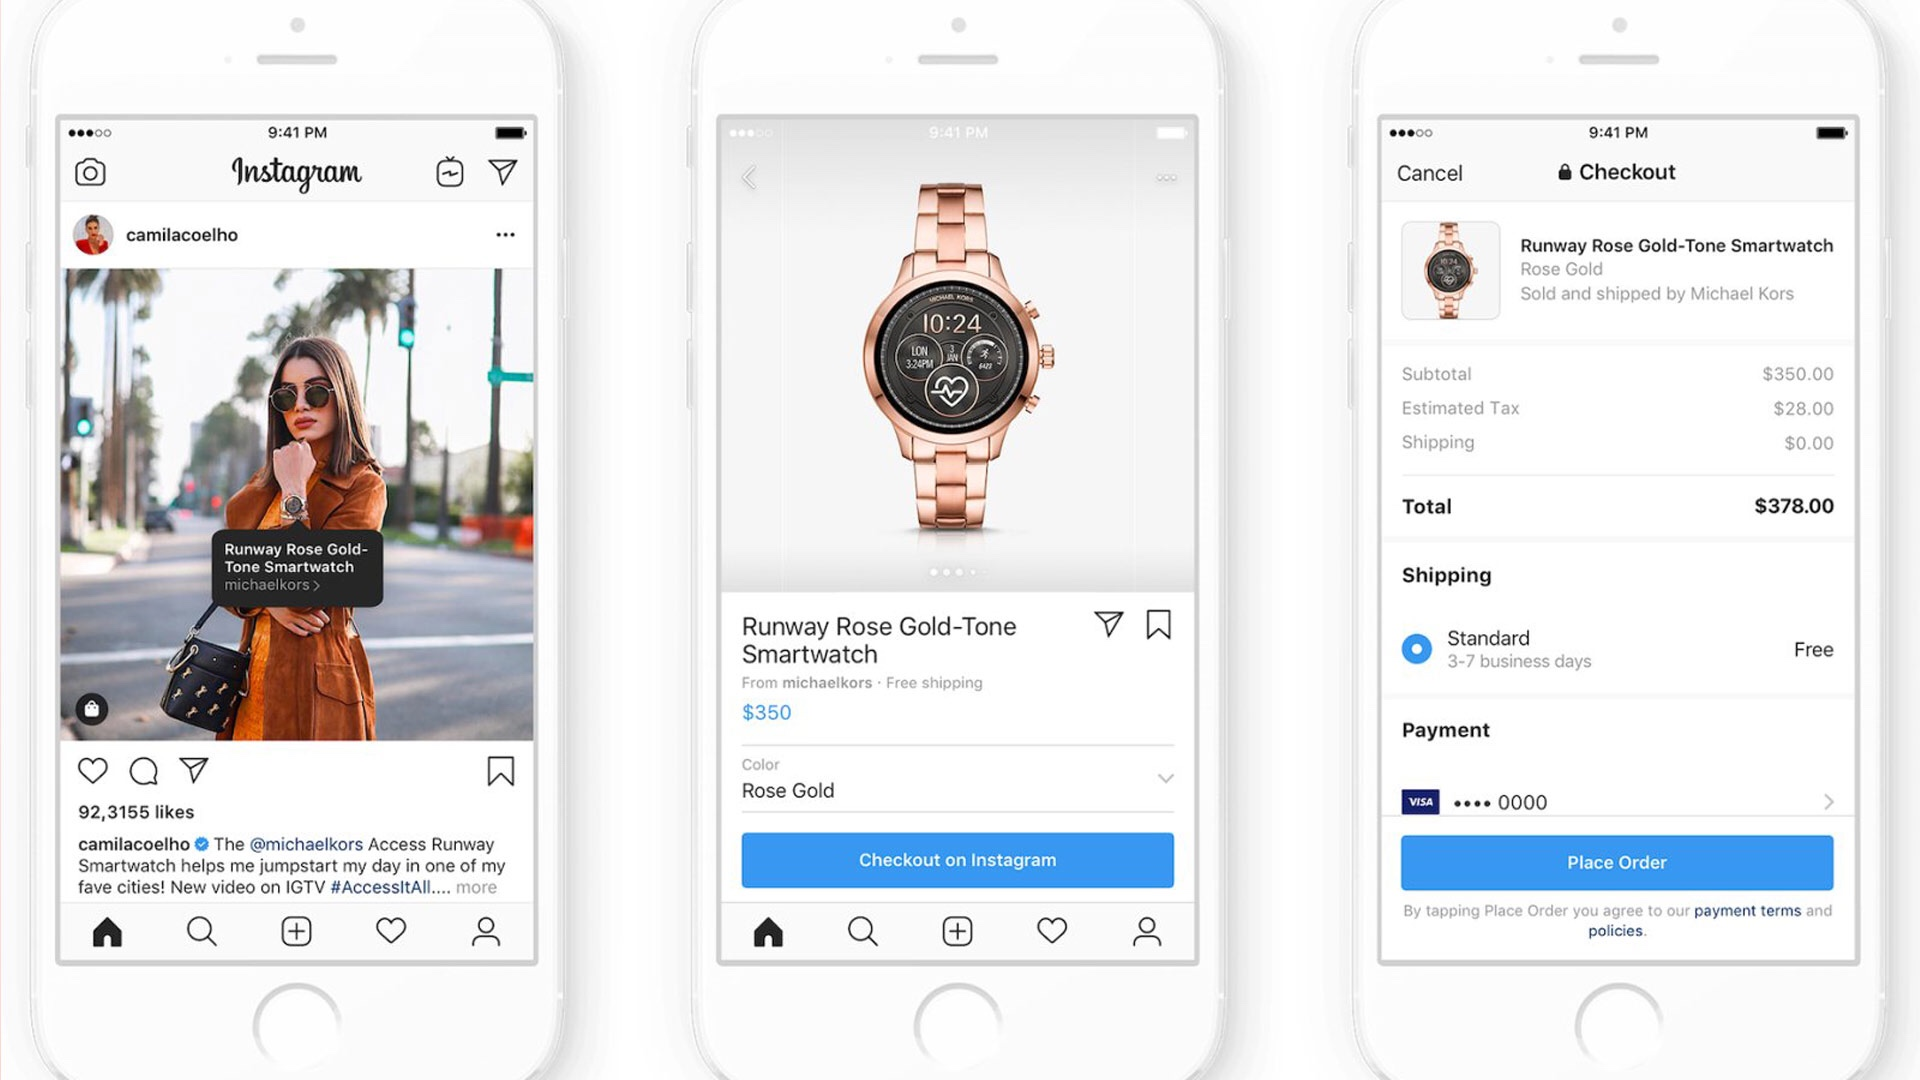 Instagram Se Suma Al E Commerce Con Influencers Comprar